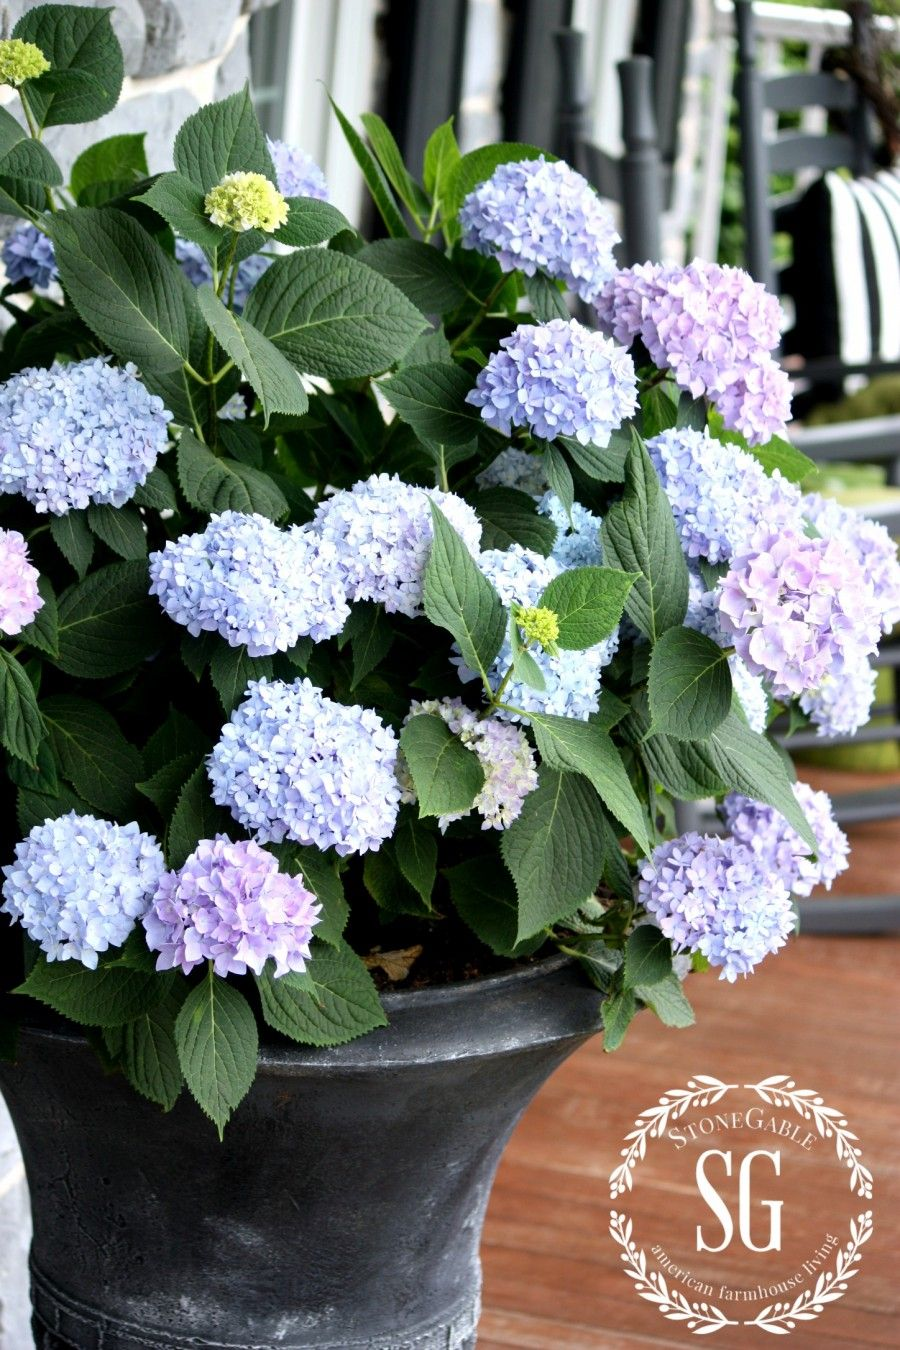 Planting Hydrangeas In Pots And Urns Stonegable Planting Hydrangeas Hydrangea Potted Growing Hydrangeas